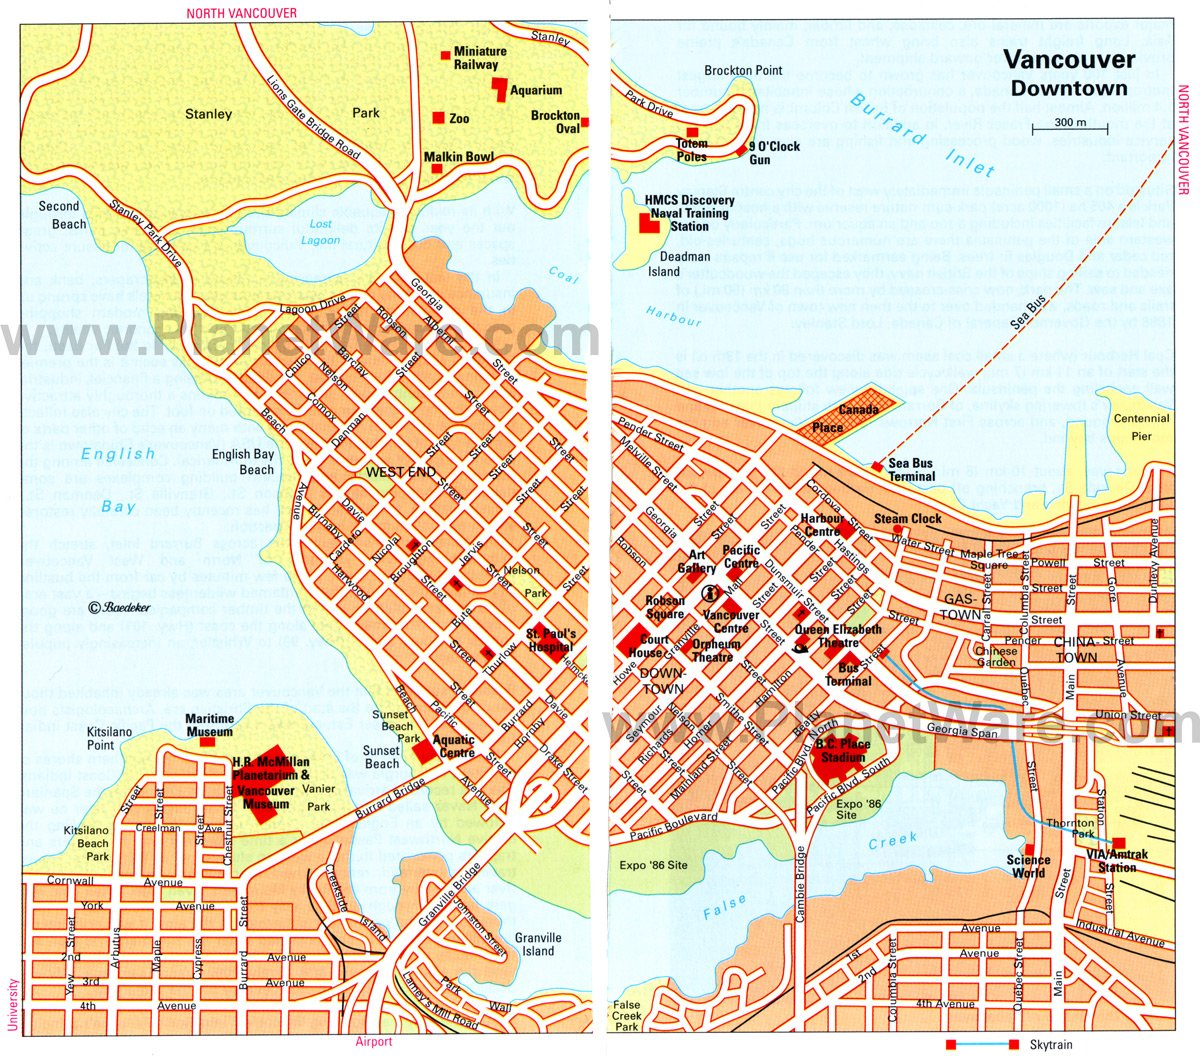 15 Top-Rated Tourist Attractions in Vancouver | PlanetWare on large map of saskatchewan, large map of sc, large map of nunavut, large map of mi, large map of ms, large map of nova scotia, large map of quebec, large map of ky, large map of nm,